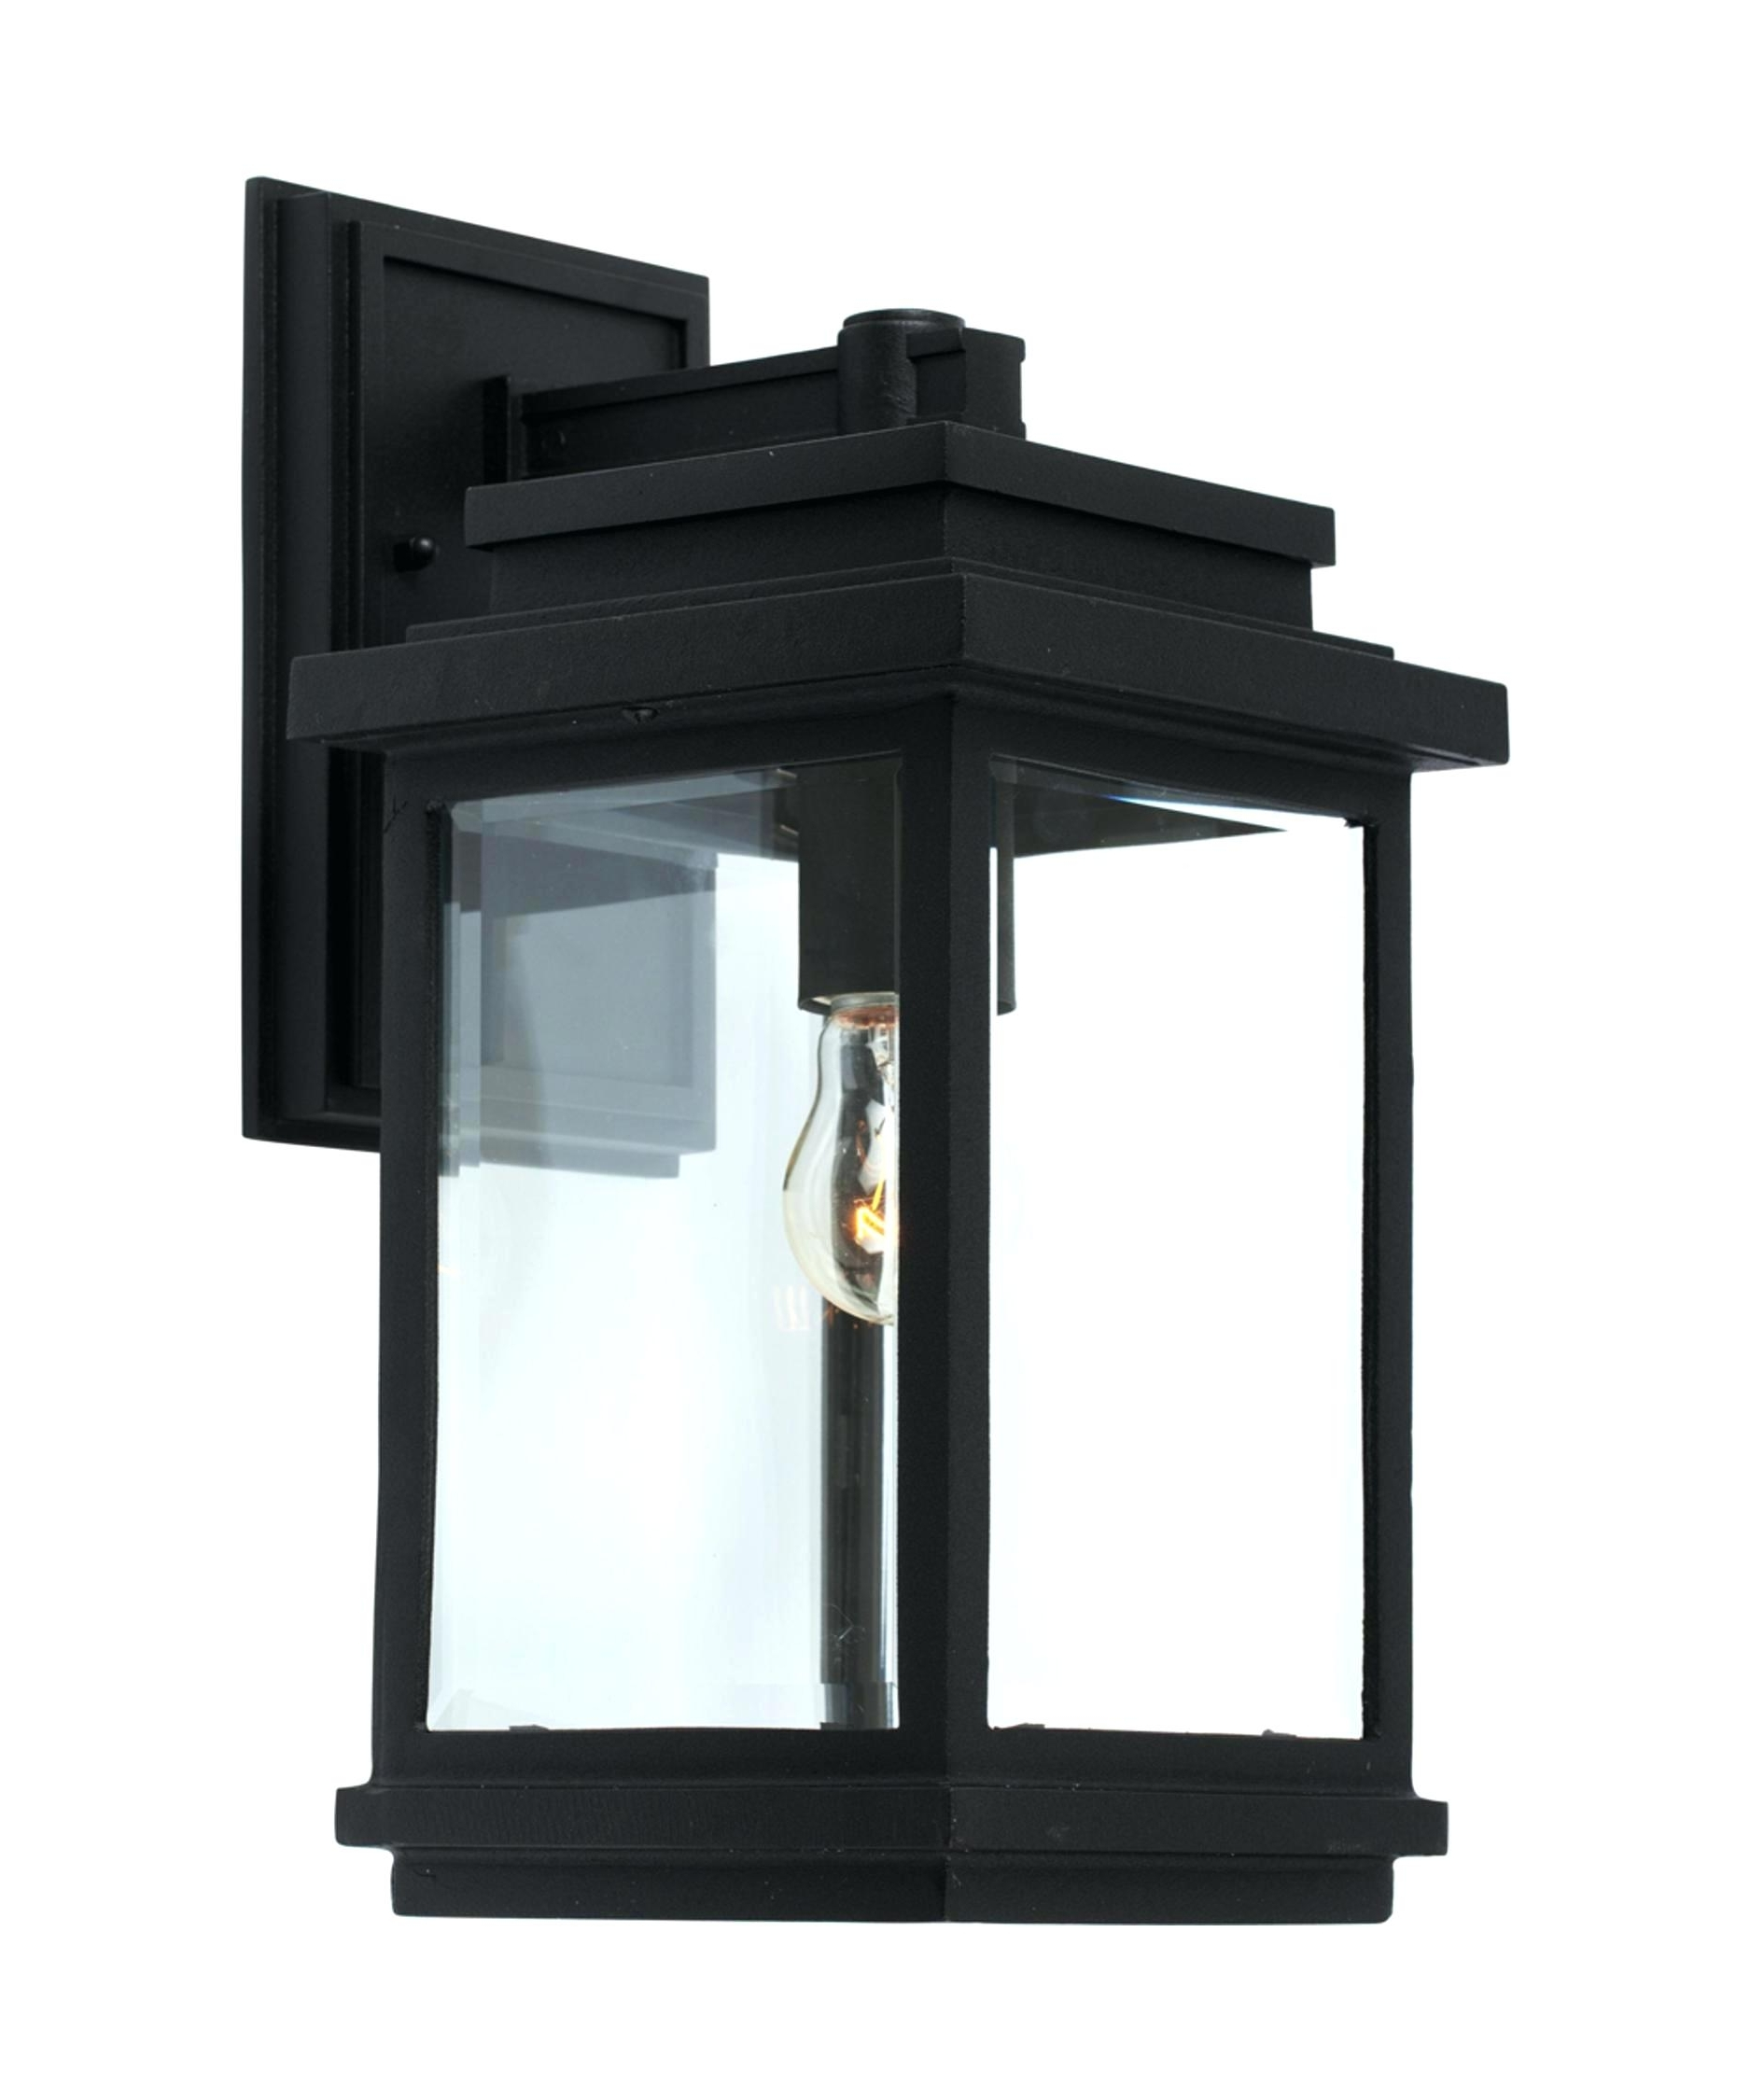 Led Outdoor Wall Lights Lanea With Motion Sensor In Well Liked Outdoor Wall Lights Ing Led Uk Light Motion Sensor Black – Mschool (View 20 of 20)